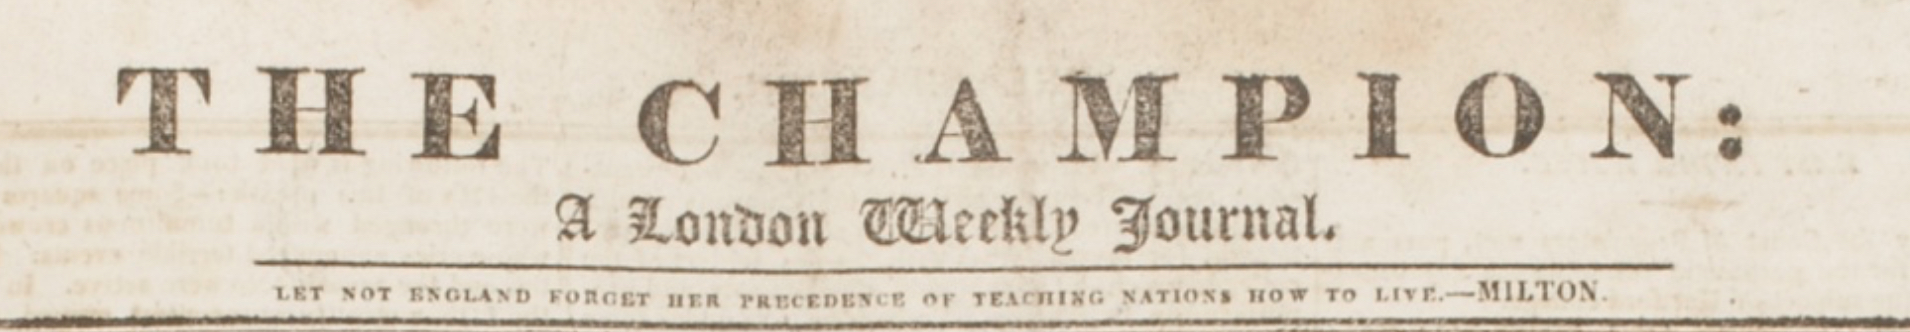 Masthead of The Champion, 1817